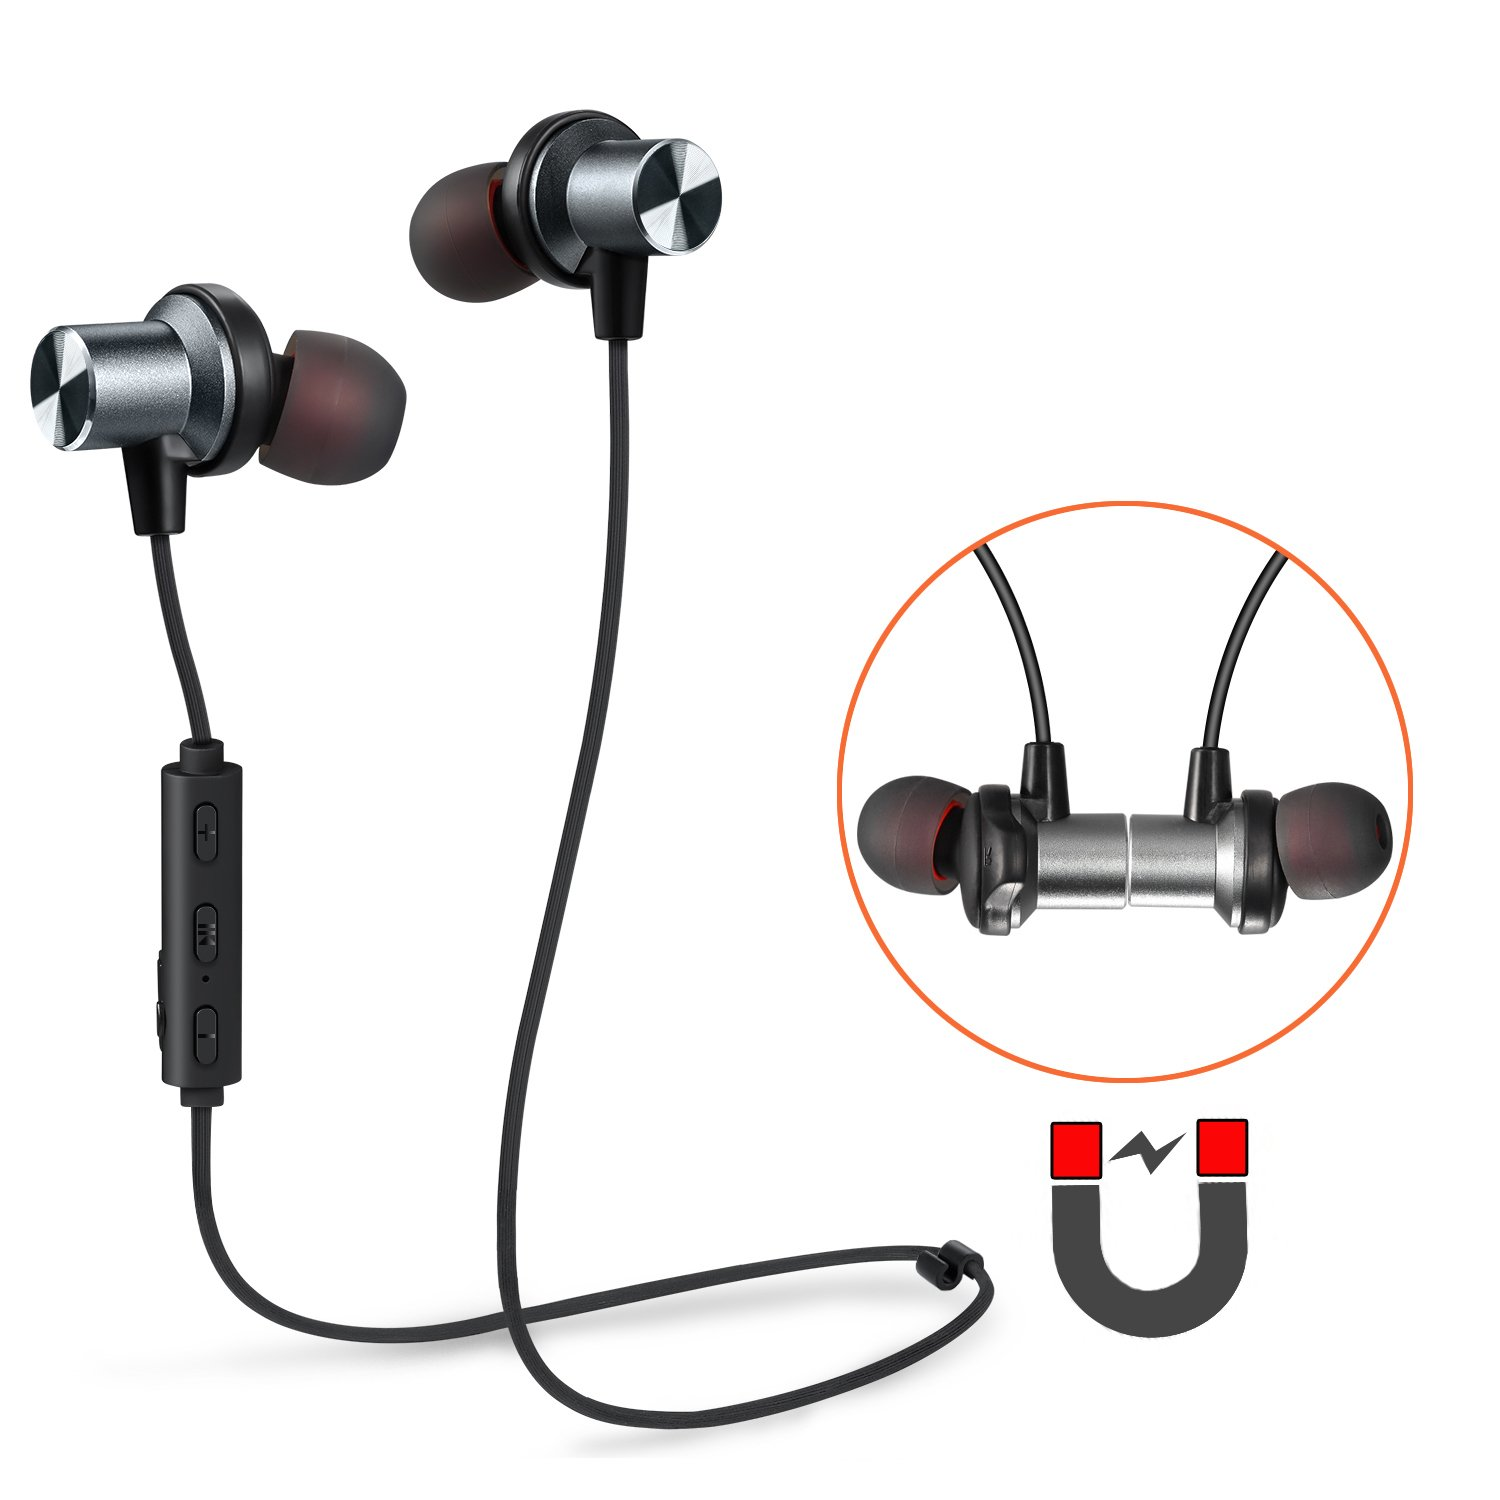 comforter free magnetic noise with running earbuds wireless microphone phone cancelling product bluetooth sweat headphones hands photo resistant headset comfortable